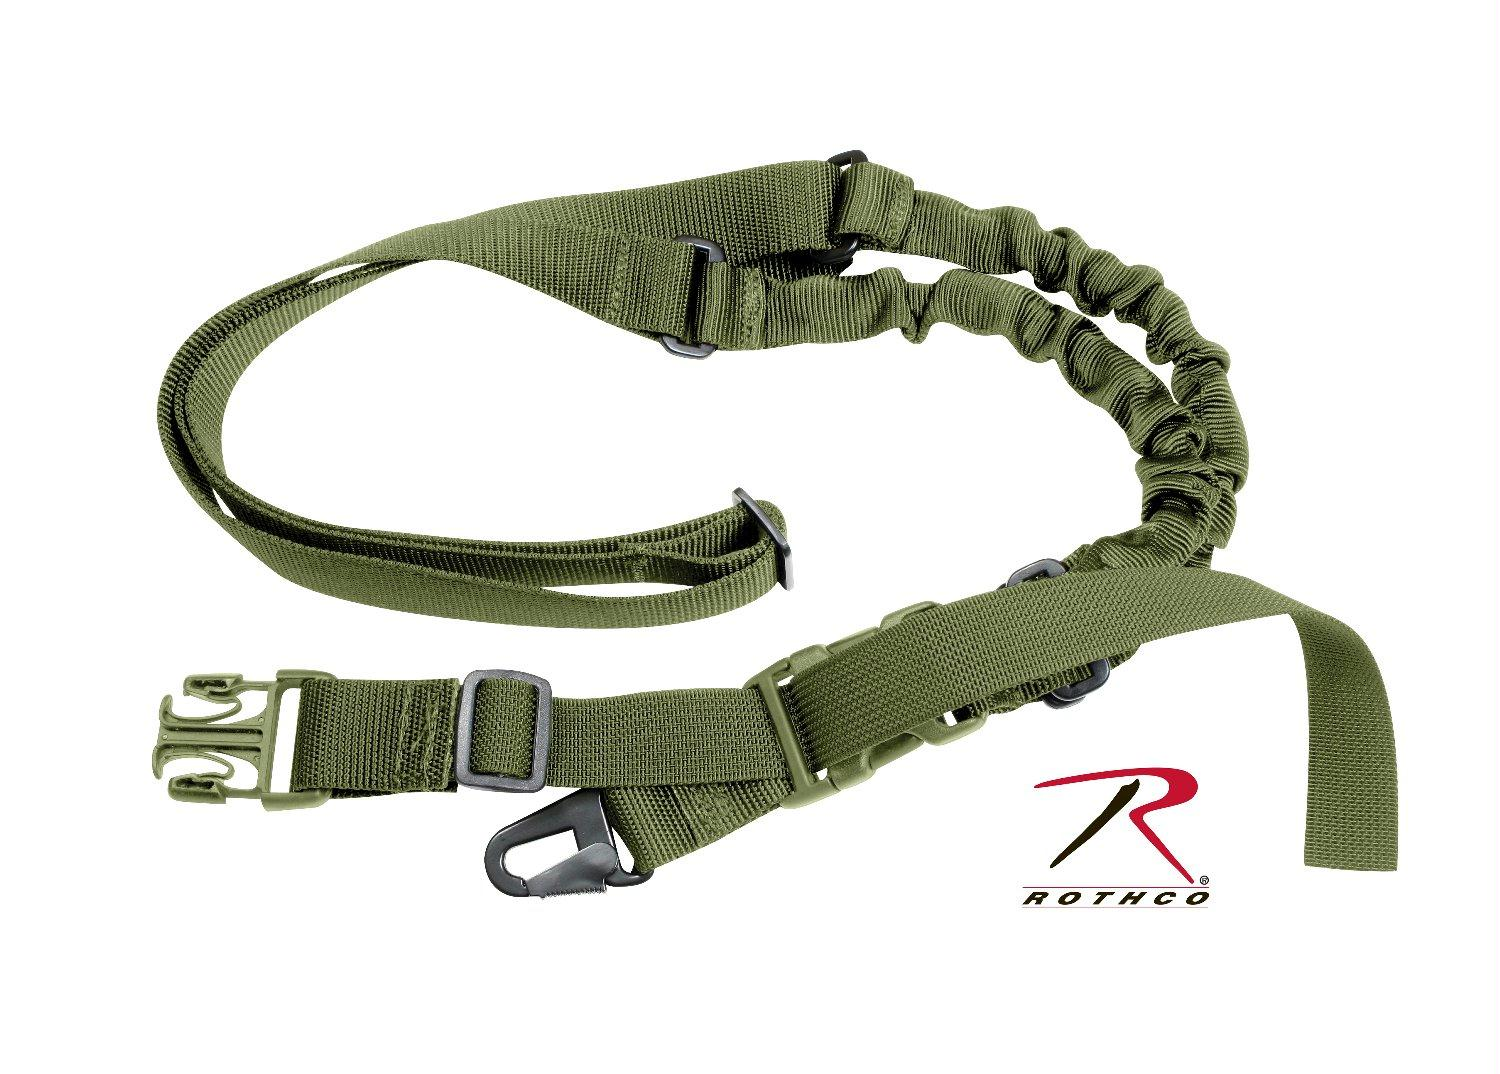 Rothco Tactical Single Point Sling - Olive Drab